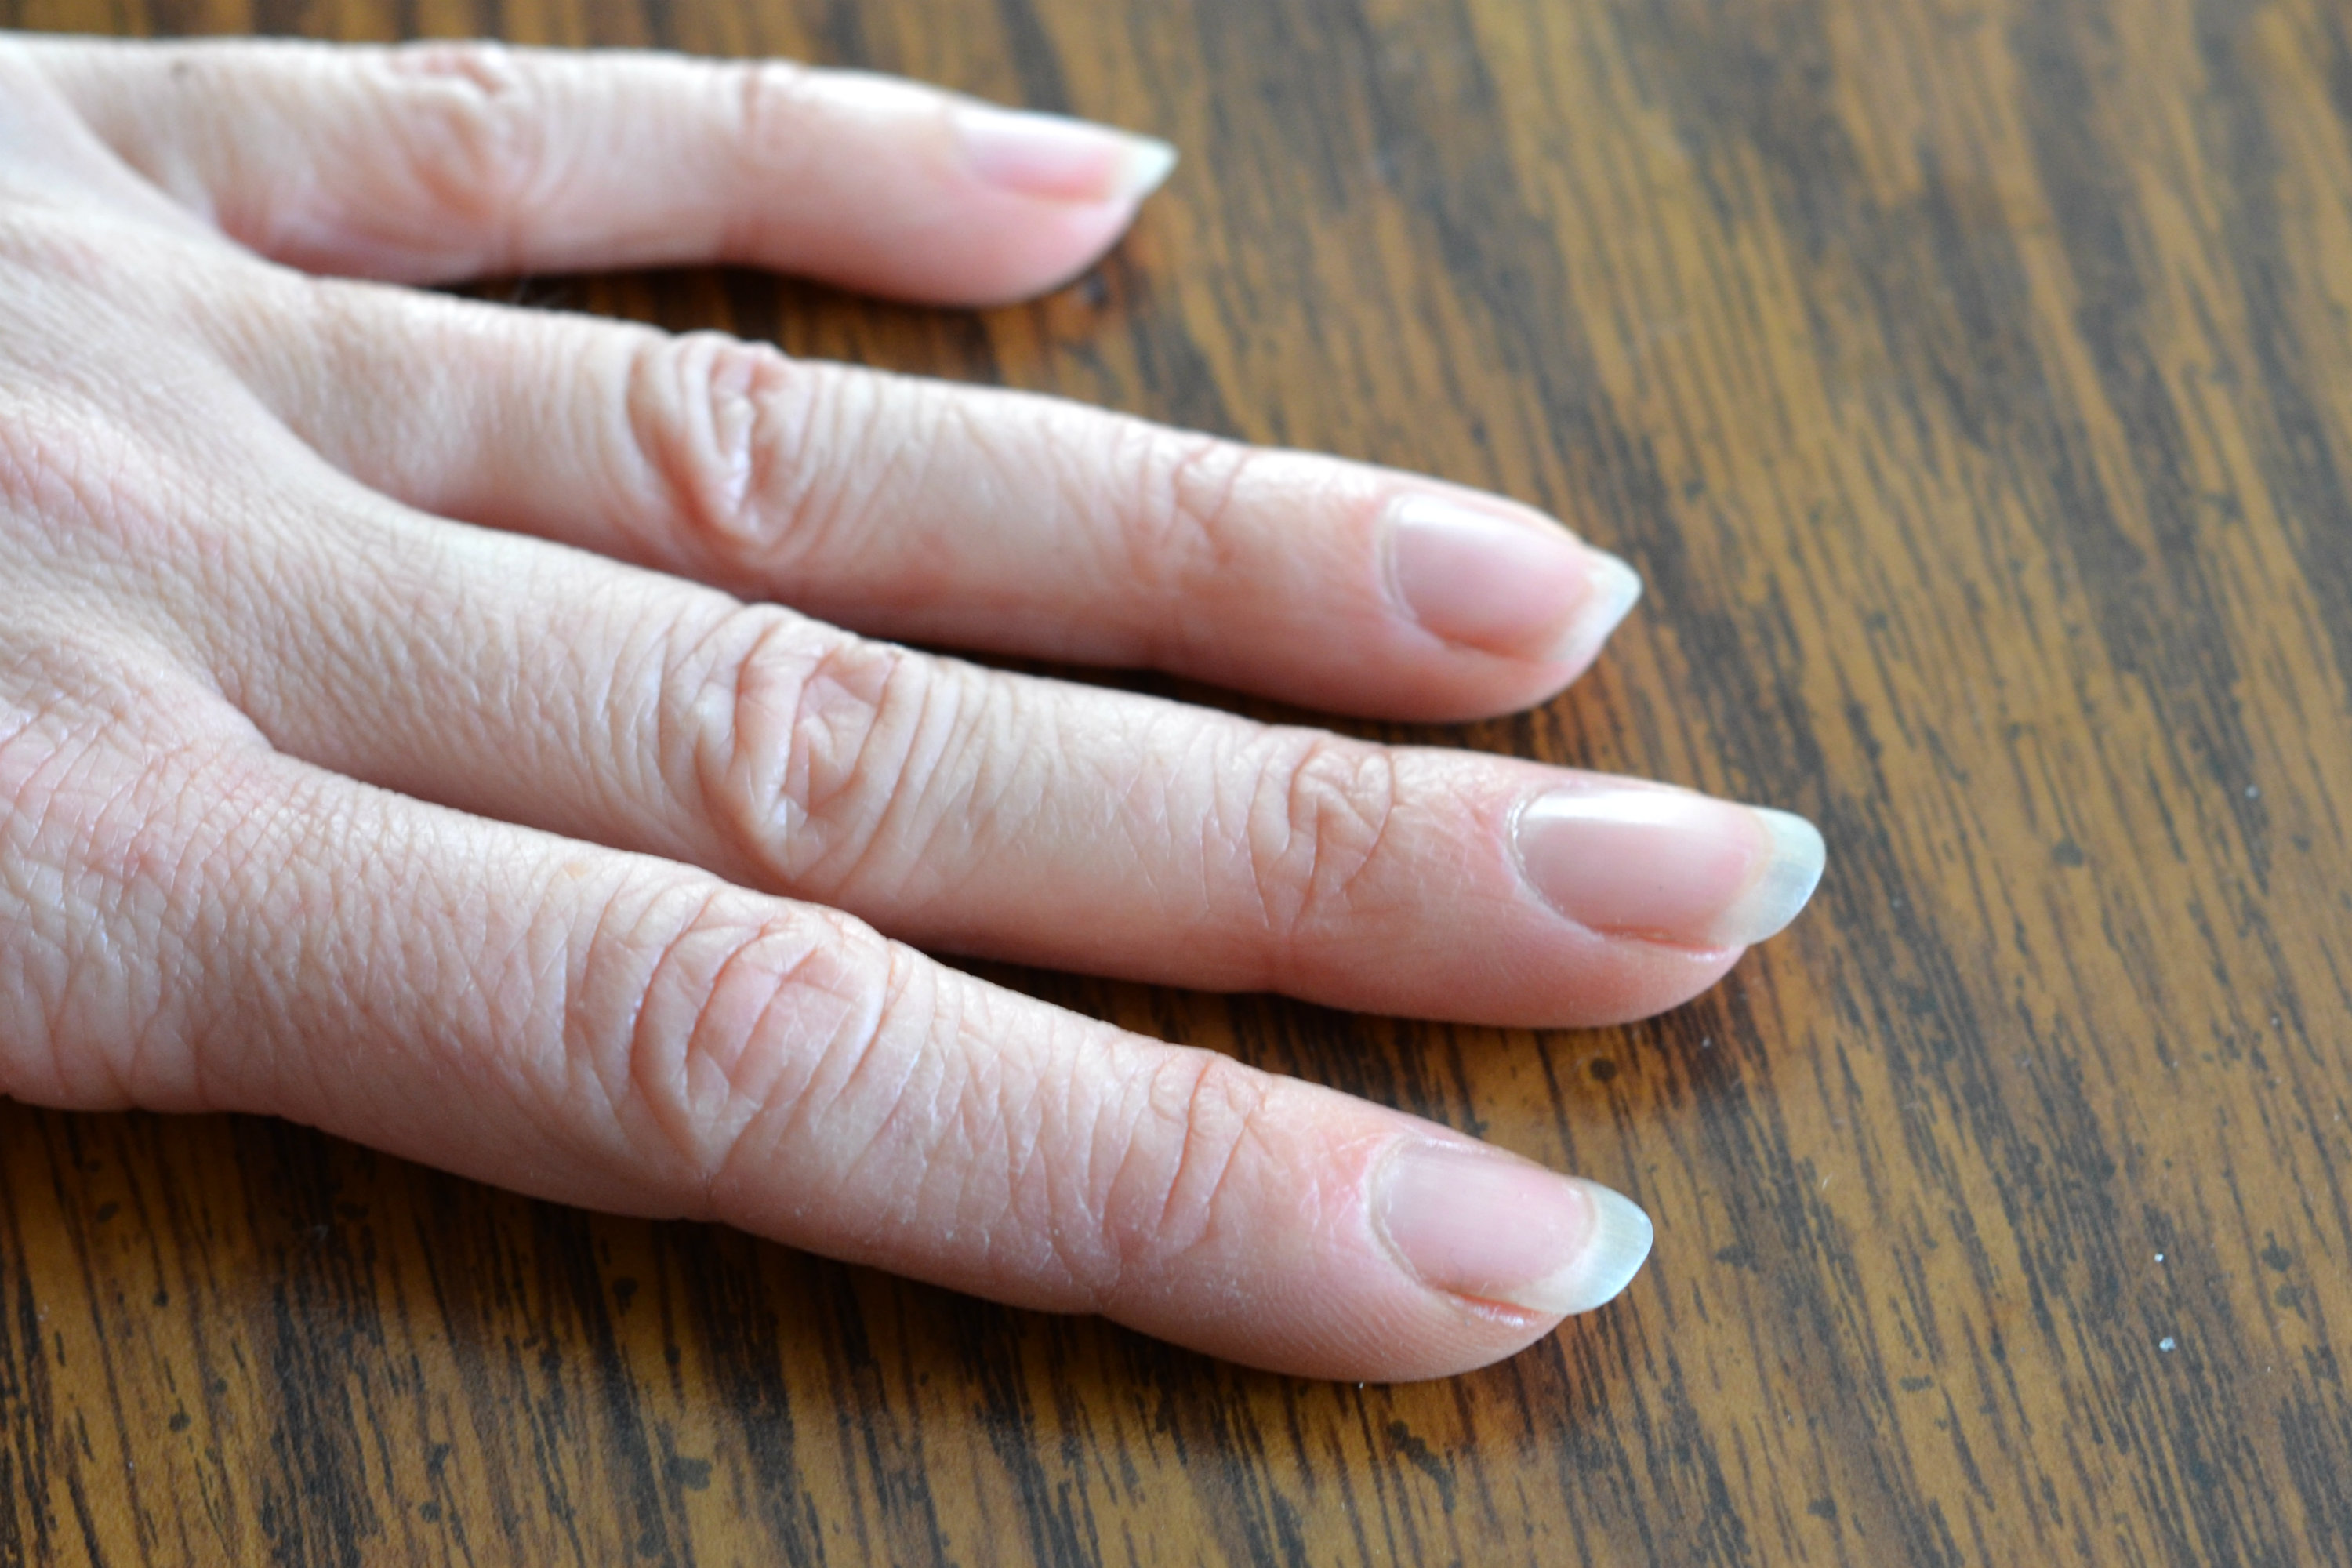 What causes dry cuticles?